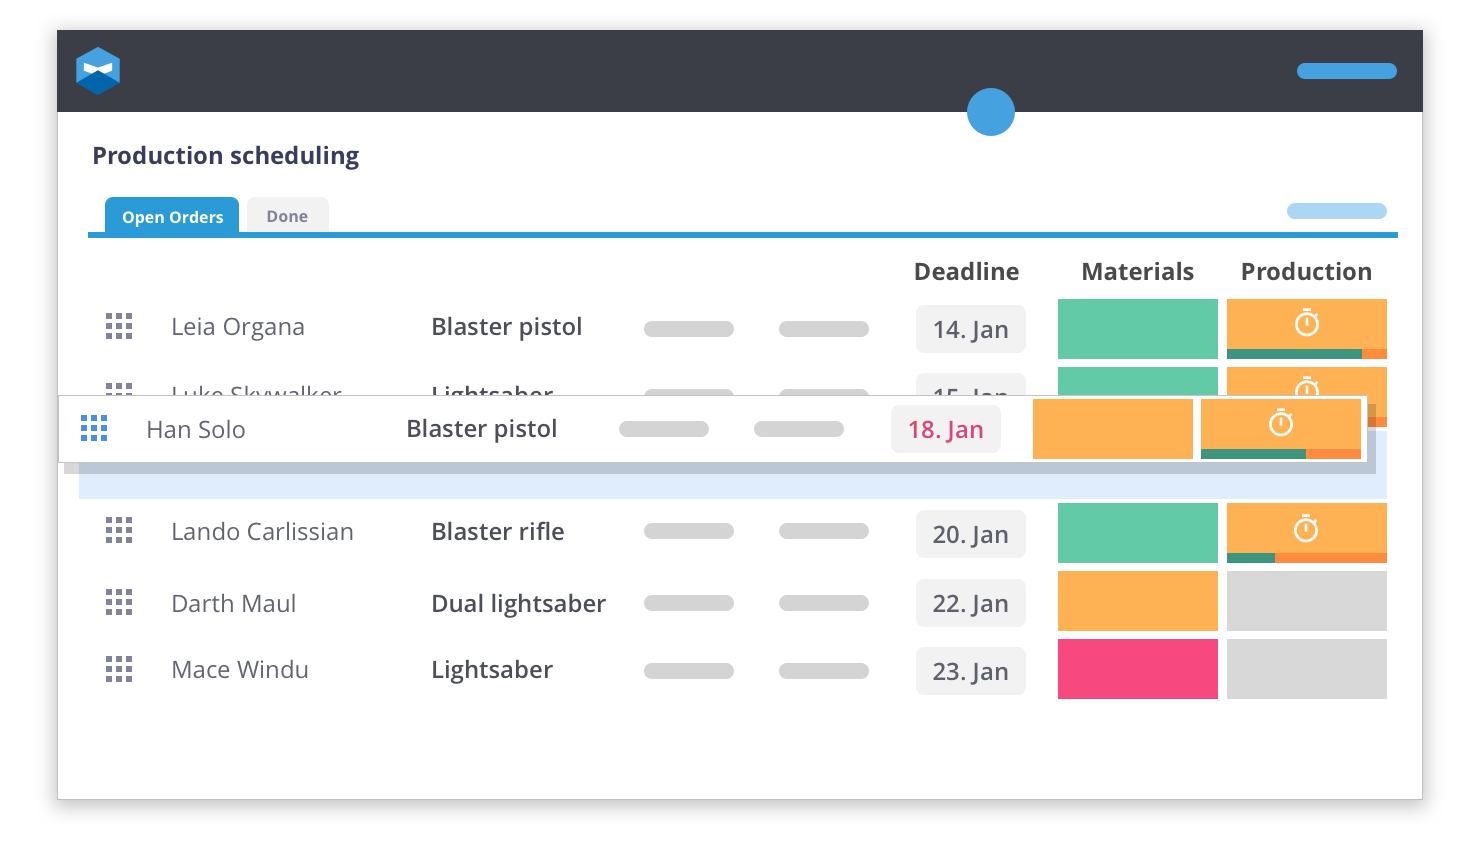 One of Katana's awesome features is the ability to keep track of your production scheduling.